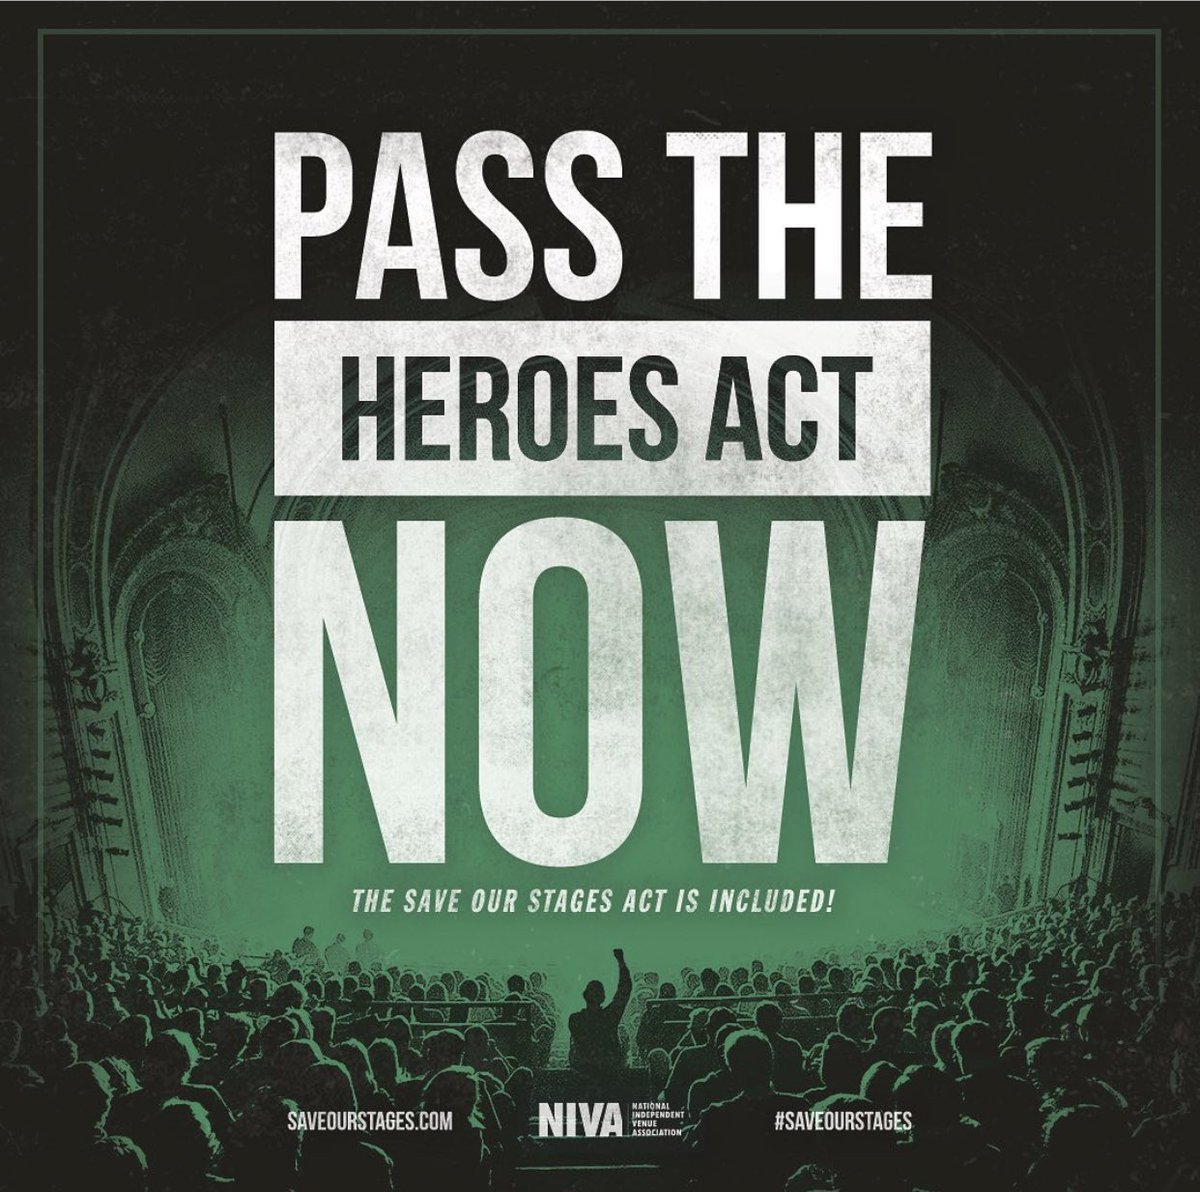 Congress: We urge you to pass the updated HEROES Act, which includes giving Americas independent venues a fighting chance to survive. Doing so will help #SaveOurStages, put millions back to work, and uplift our communities. Thanks to Sen & Reps who are helping #SaveOurStages